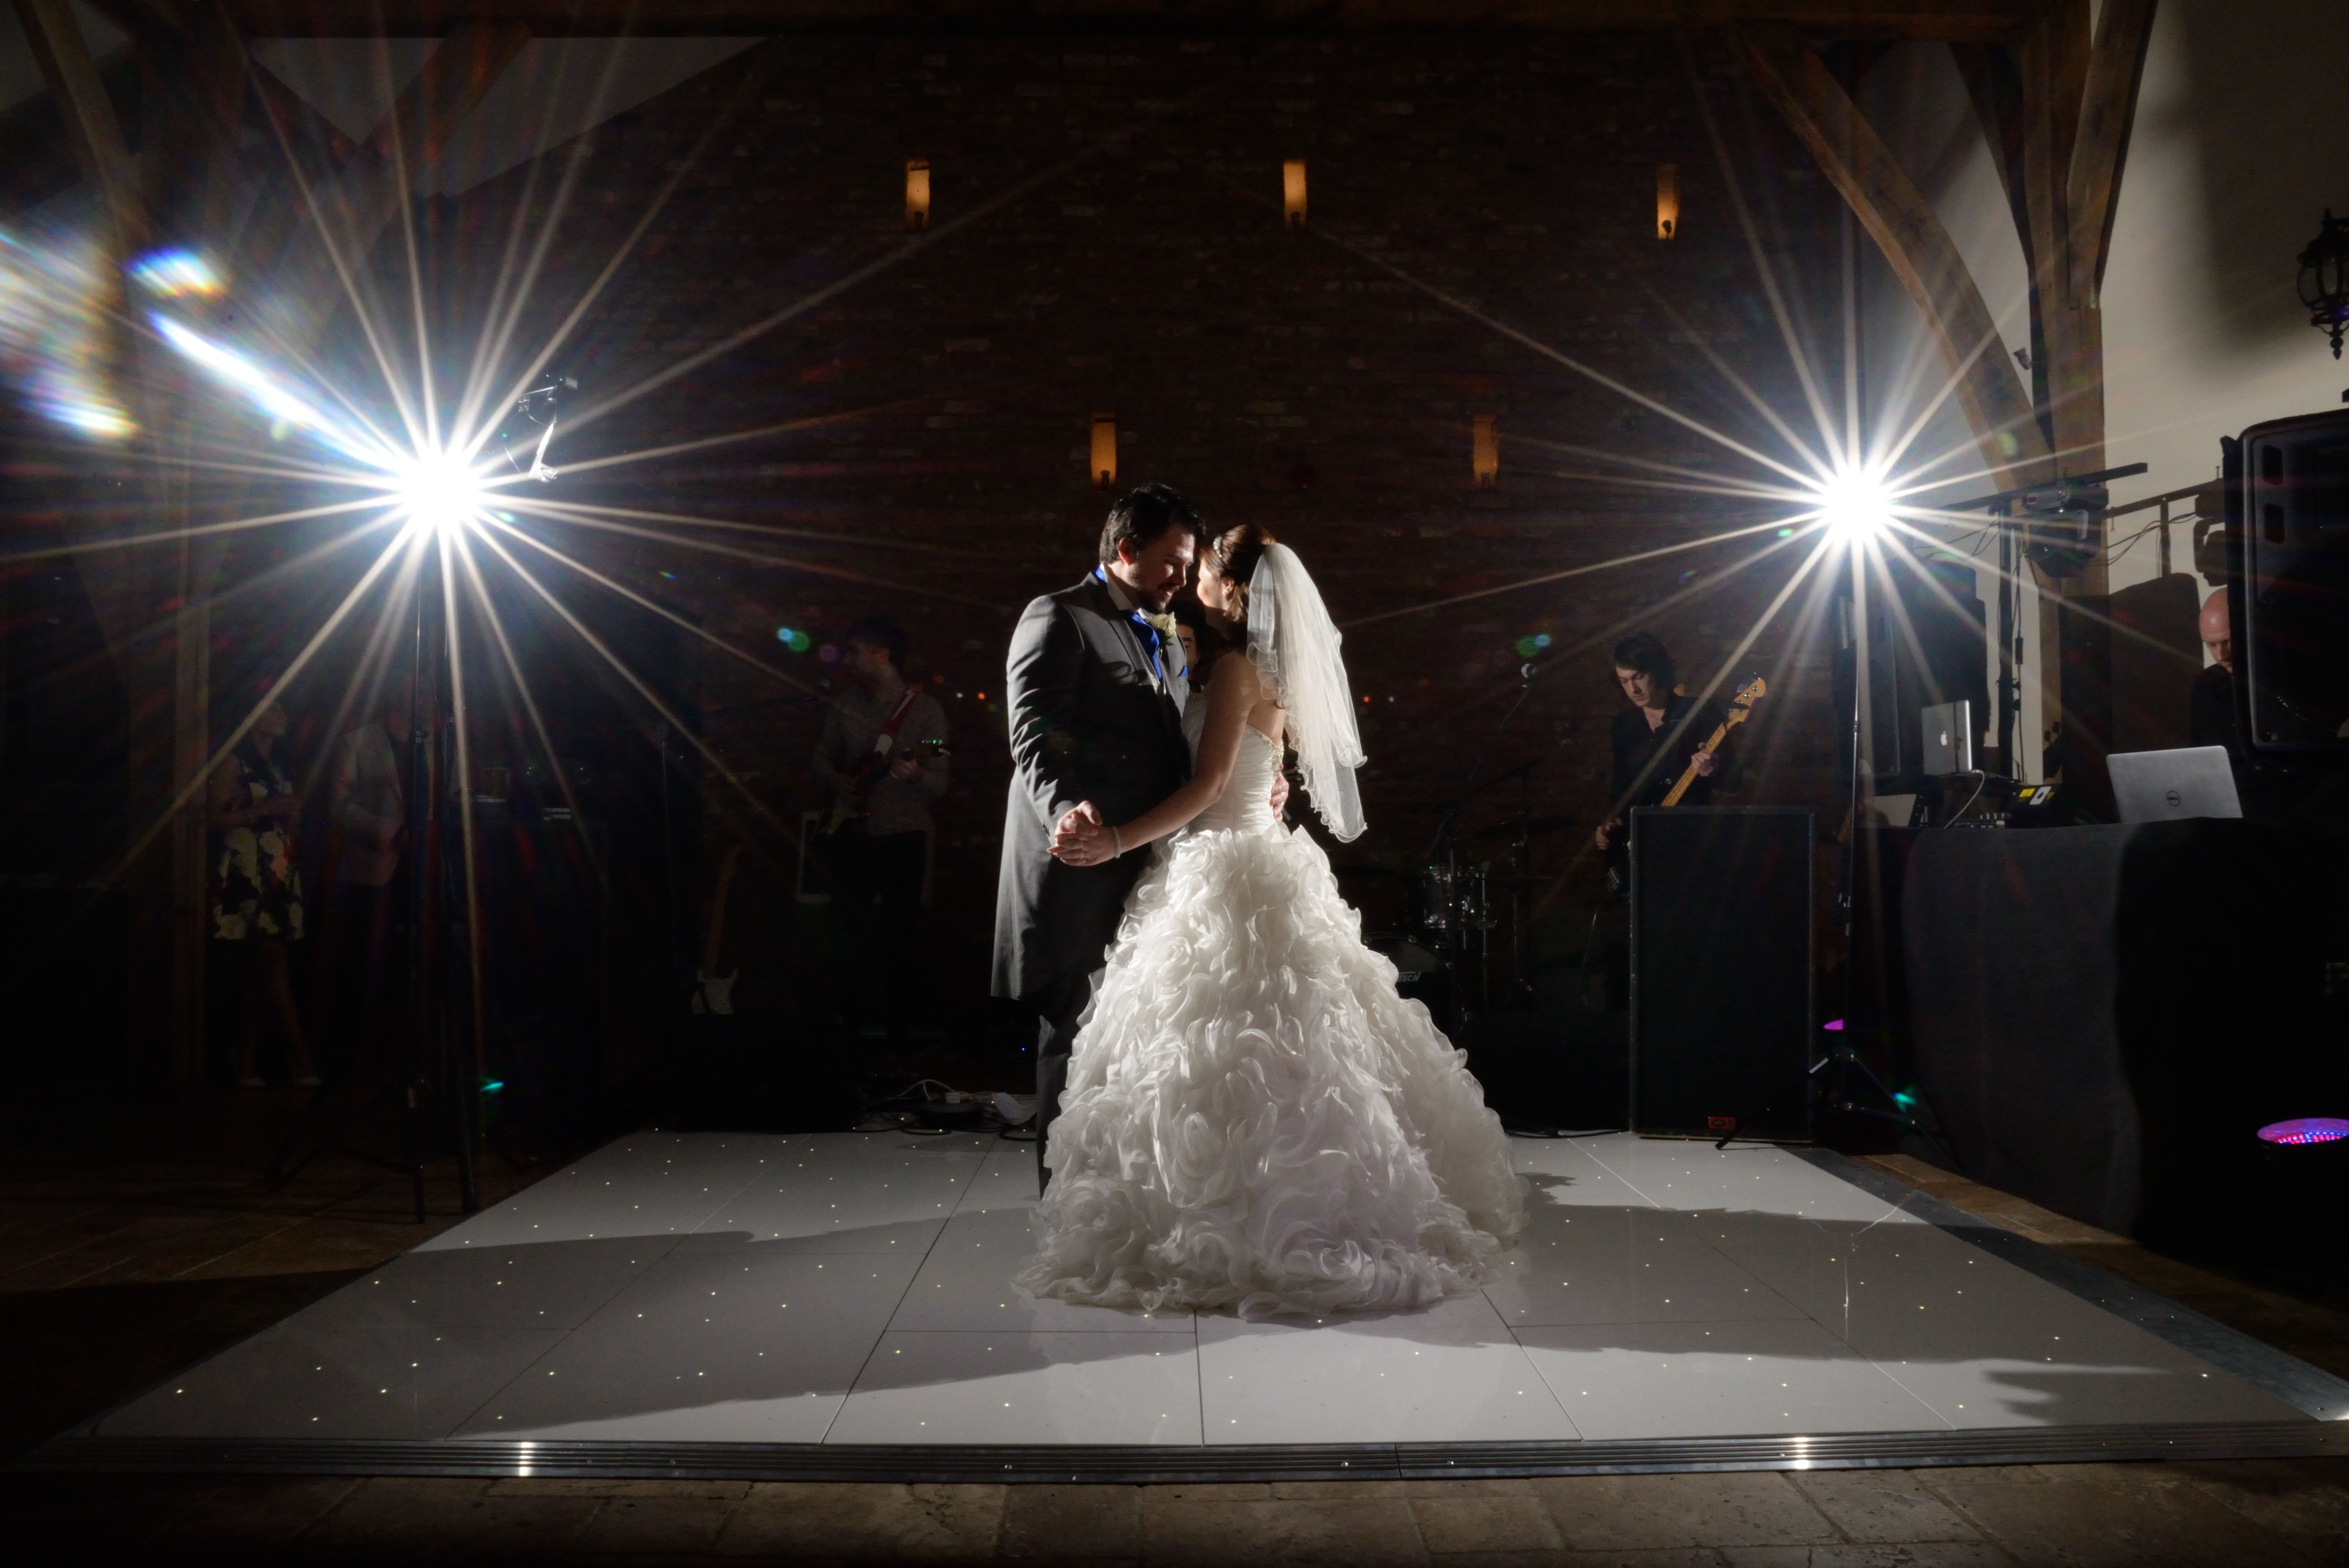 Wedding DJs & Starlit Dance Floor